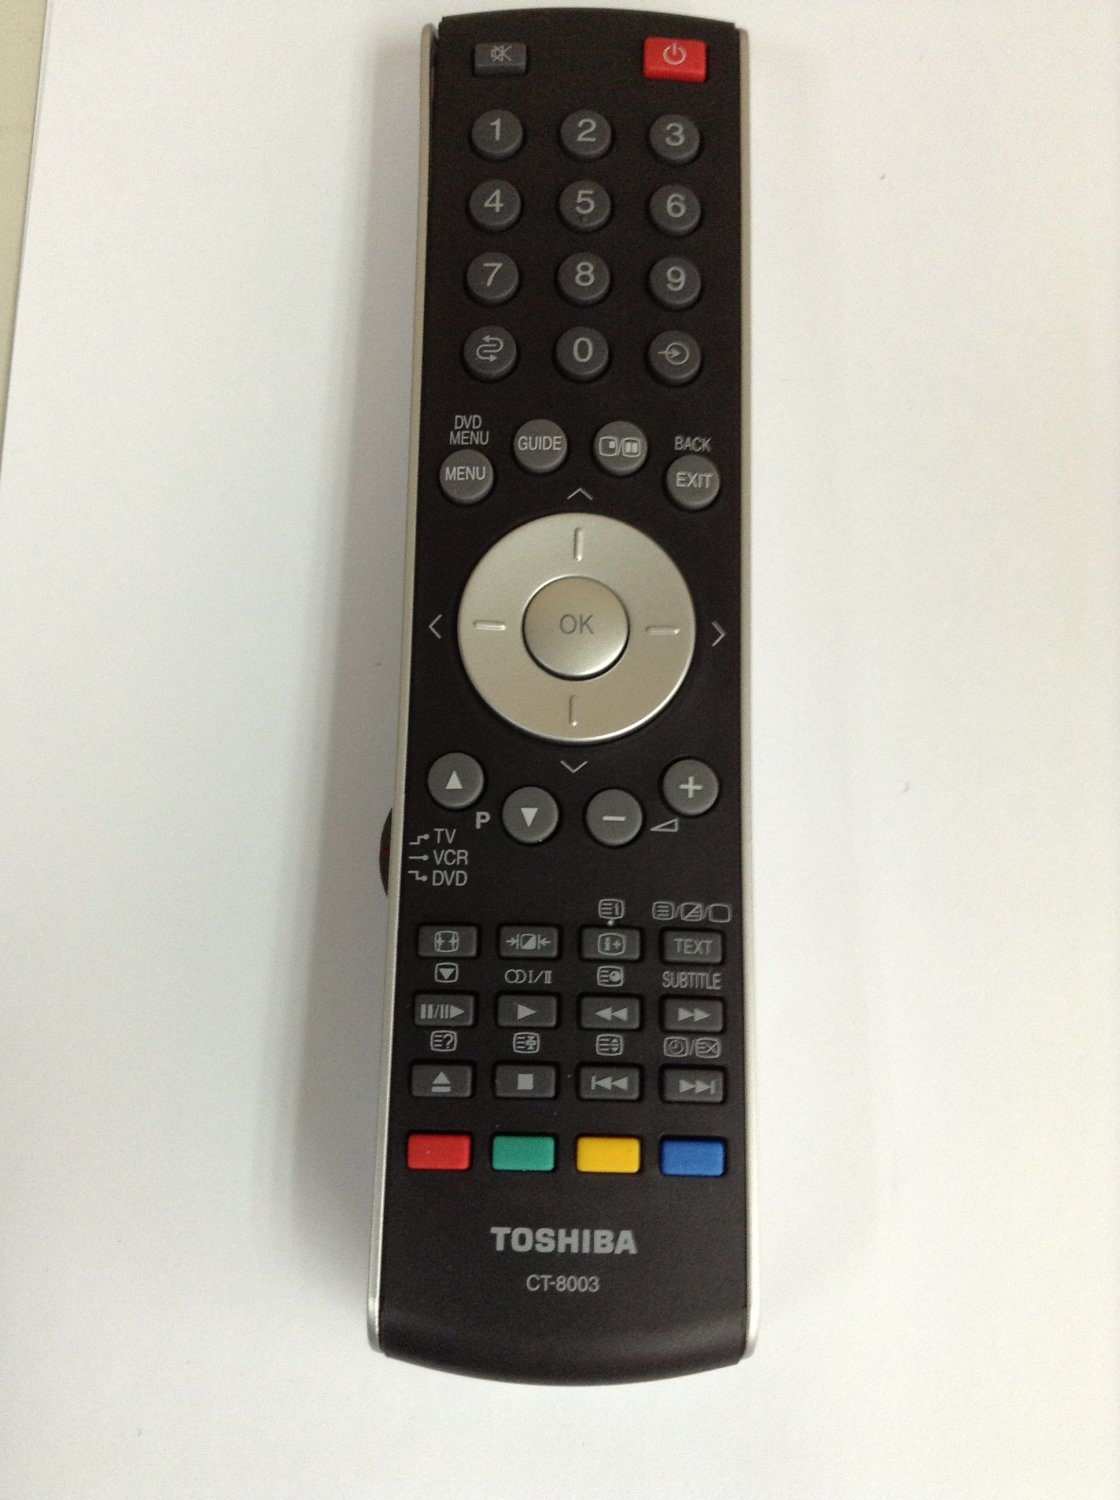 REMOTE CONTROL FOR TOSHIBA TV 52XV540/U 46VX700U 55VX700 55VX700U